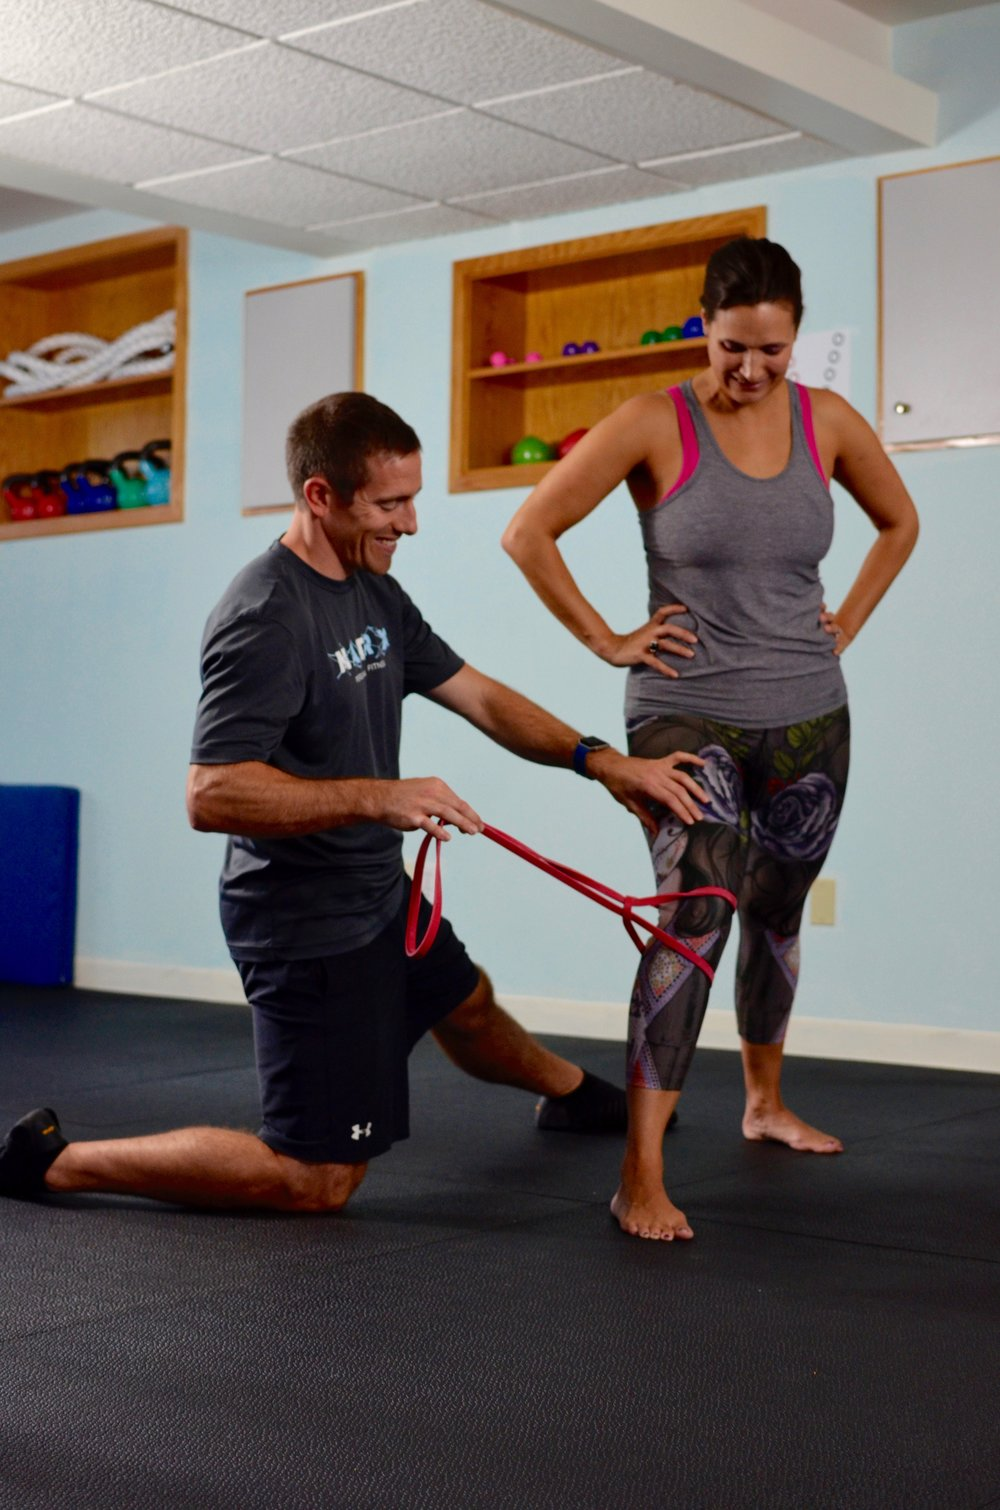 Matrix PErsonalized Fitness in East Greenwich, RI focuses on incorporating exercise, diet and nutrition for a whole body performance boost.